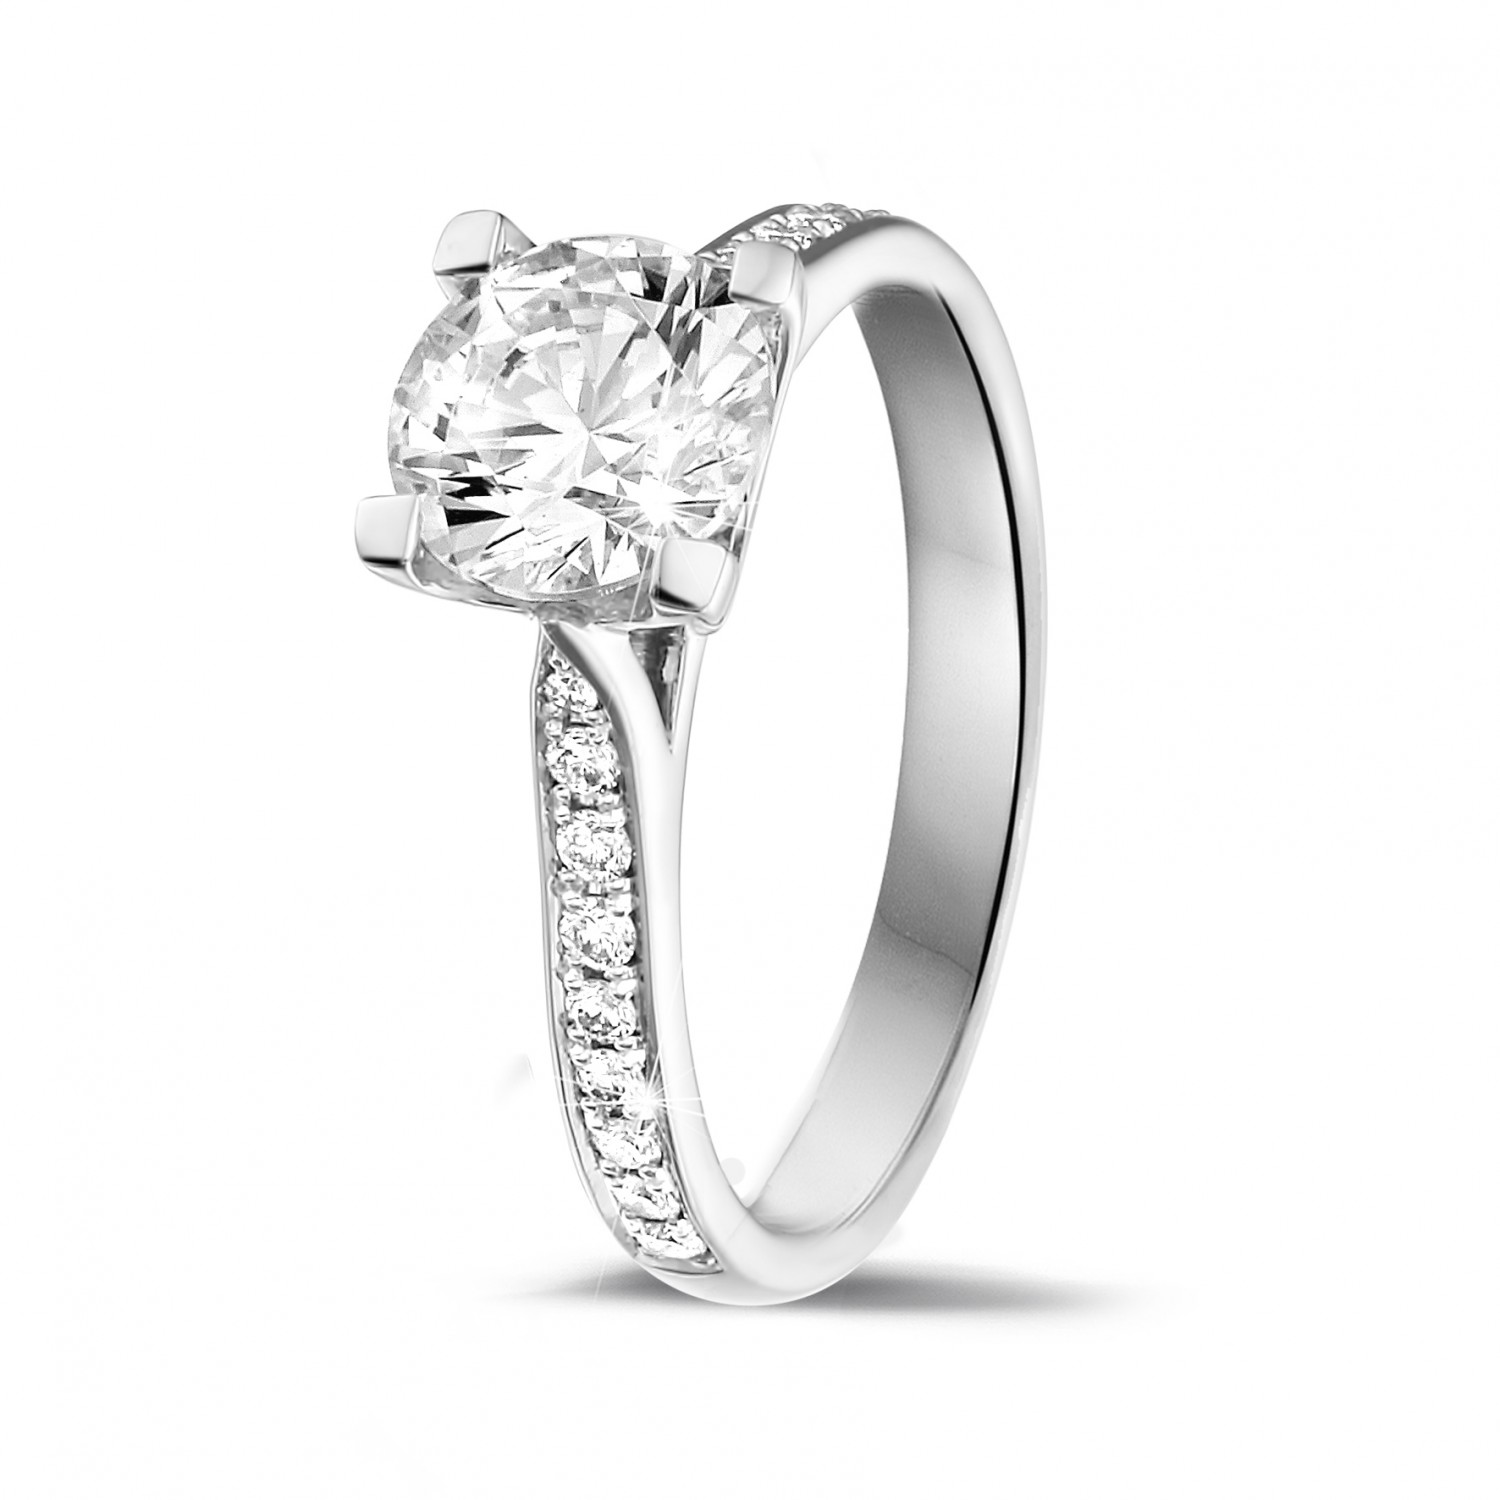 125 Carat Solitaire Diamond Ring In Platinum With Side